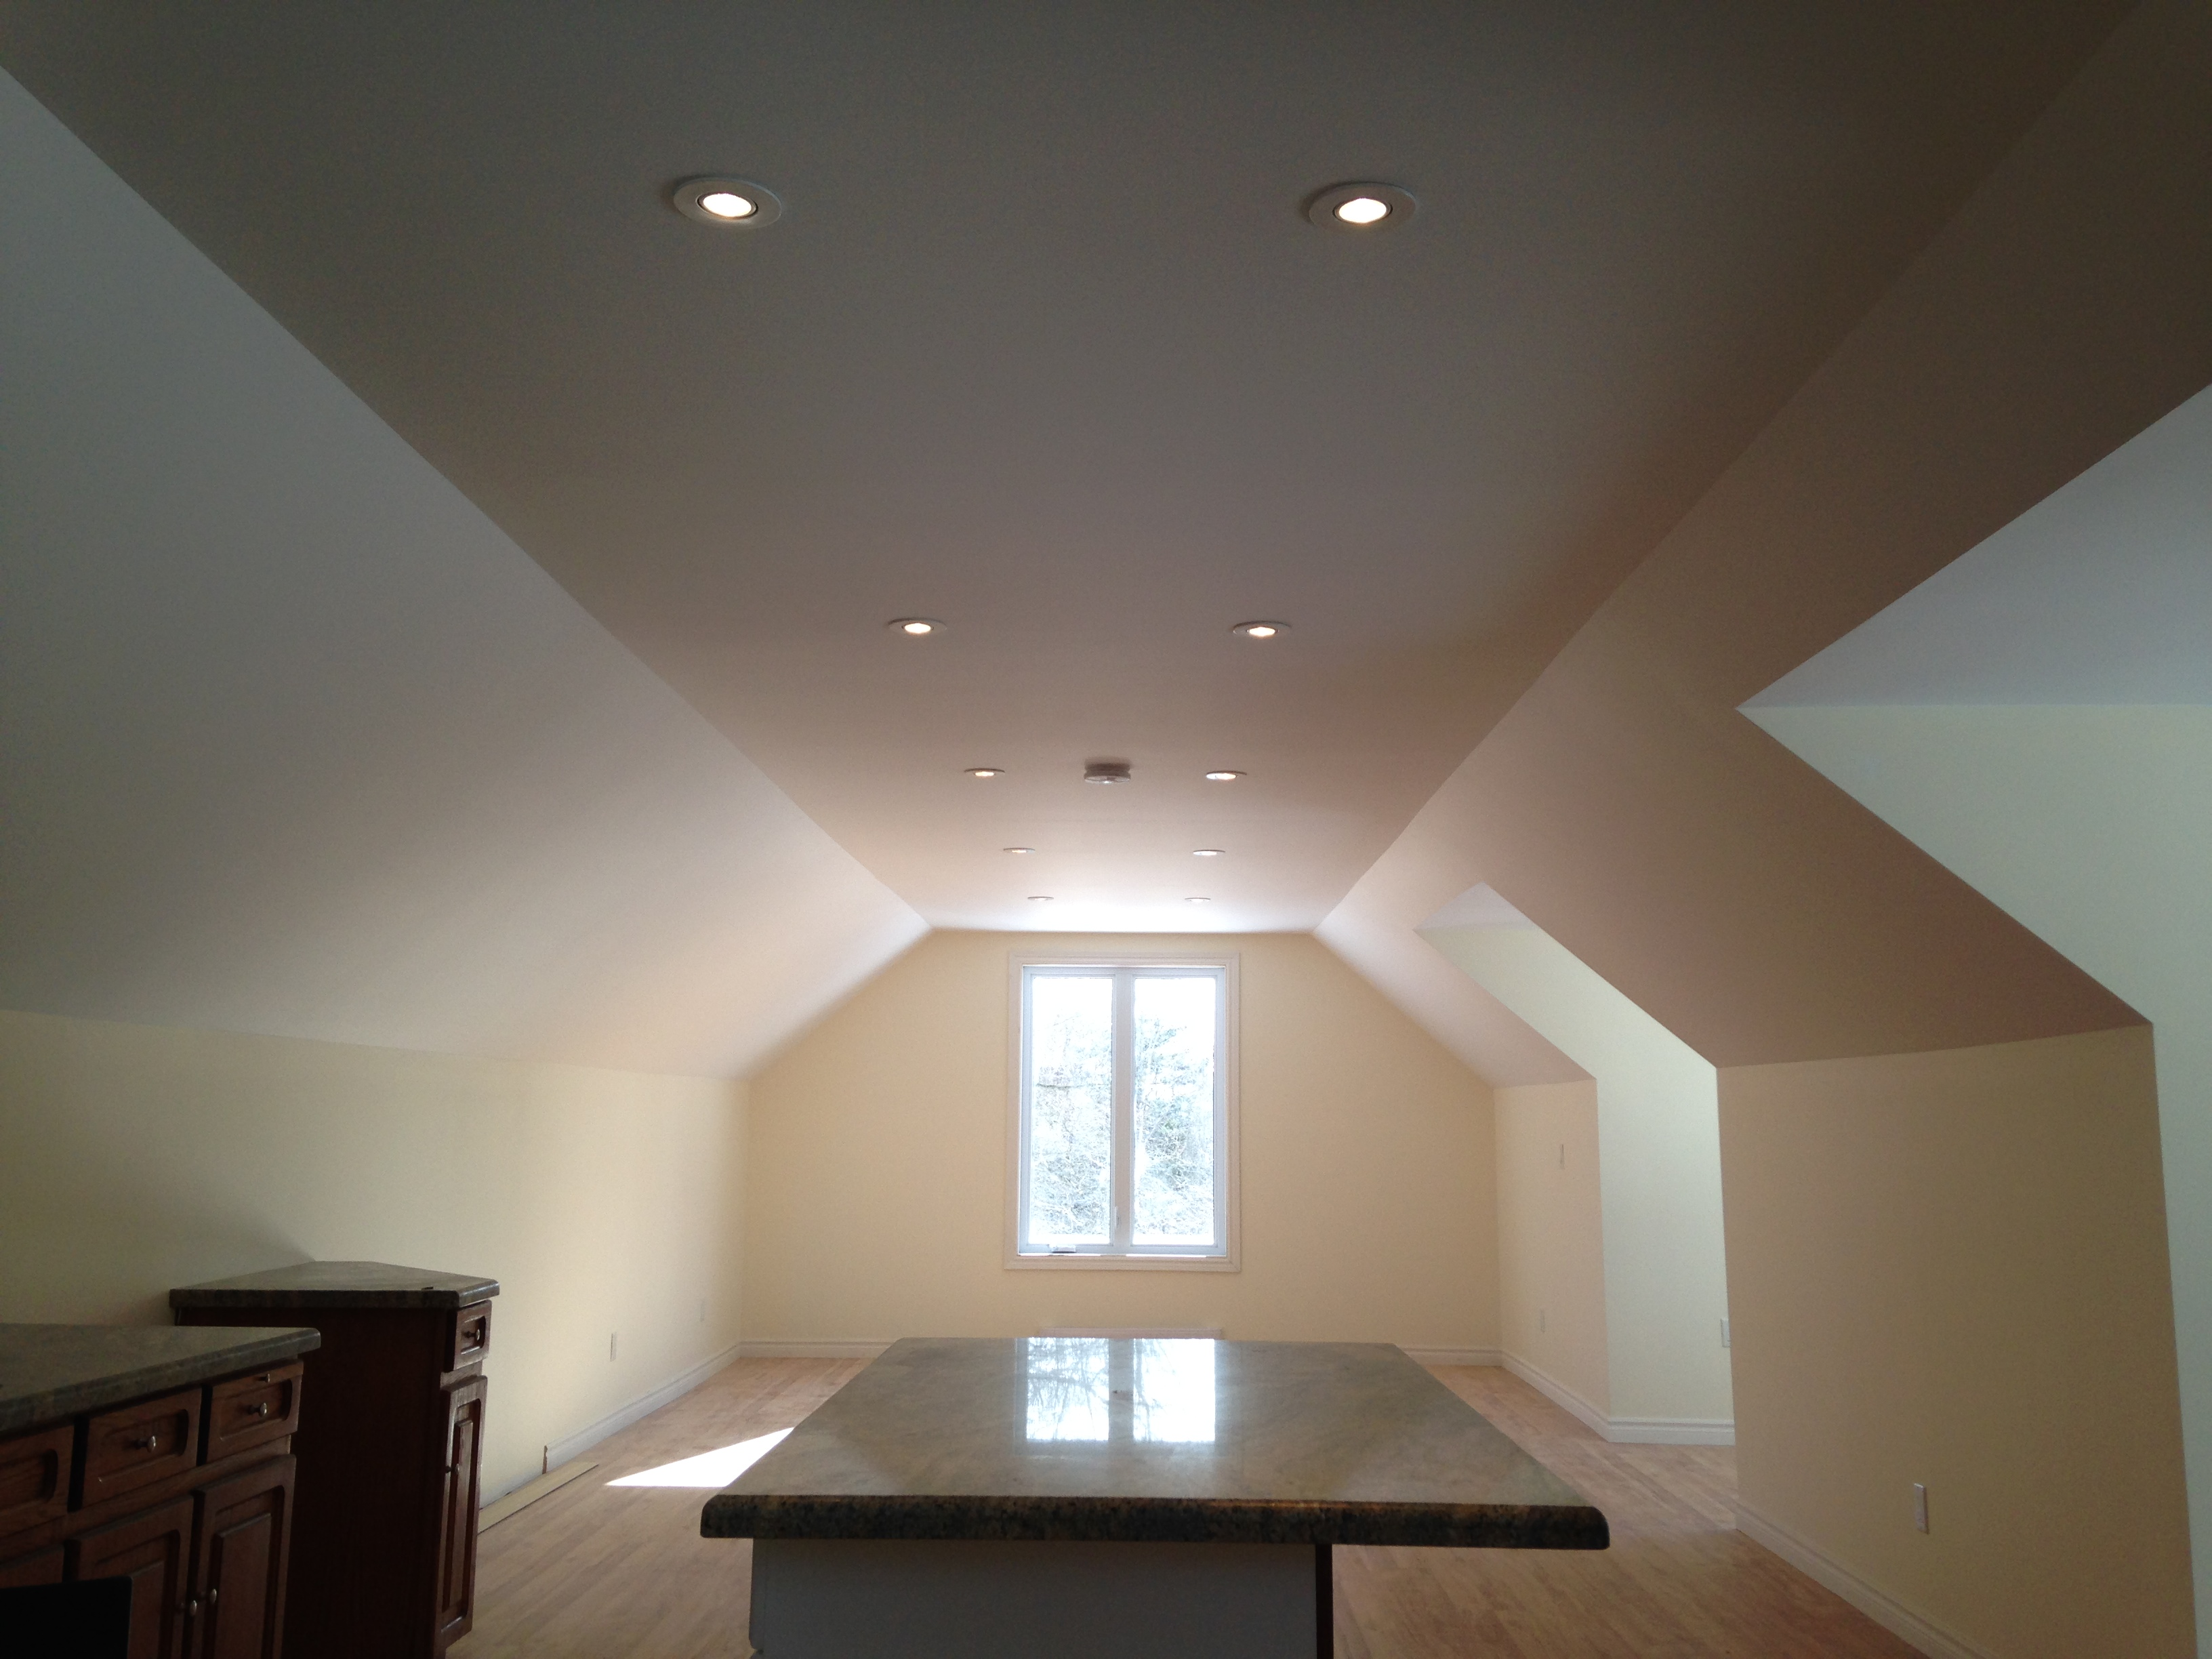 Renovation in an attic space in a old home in Cobourg Ontario.